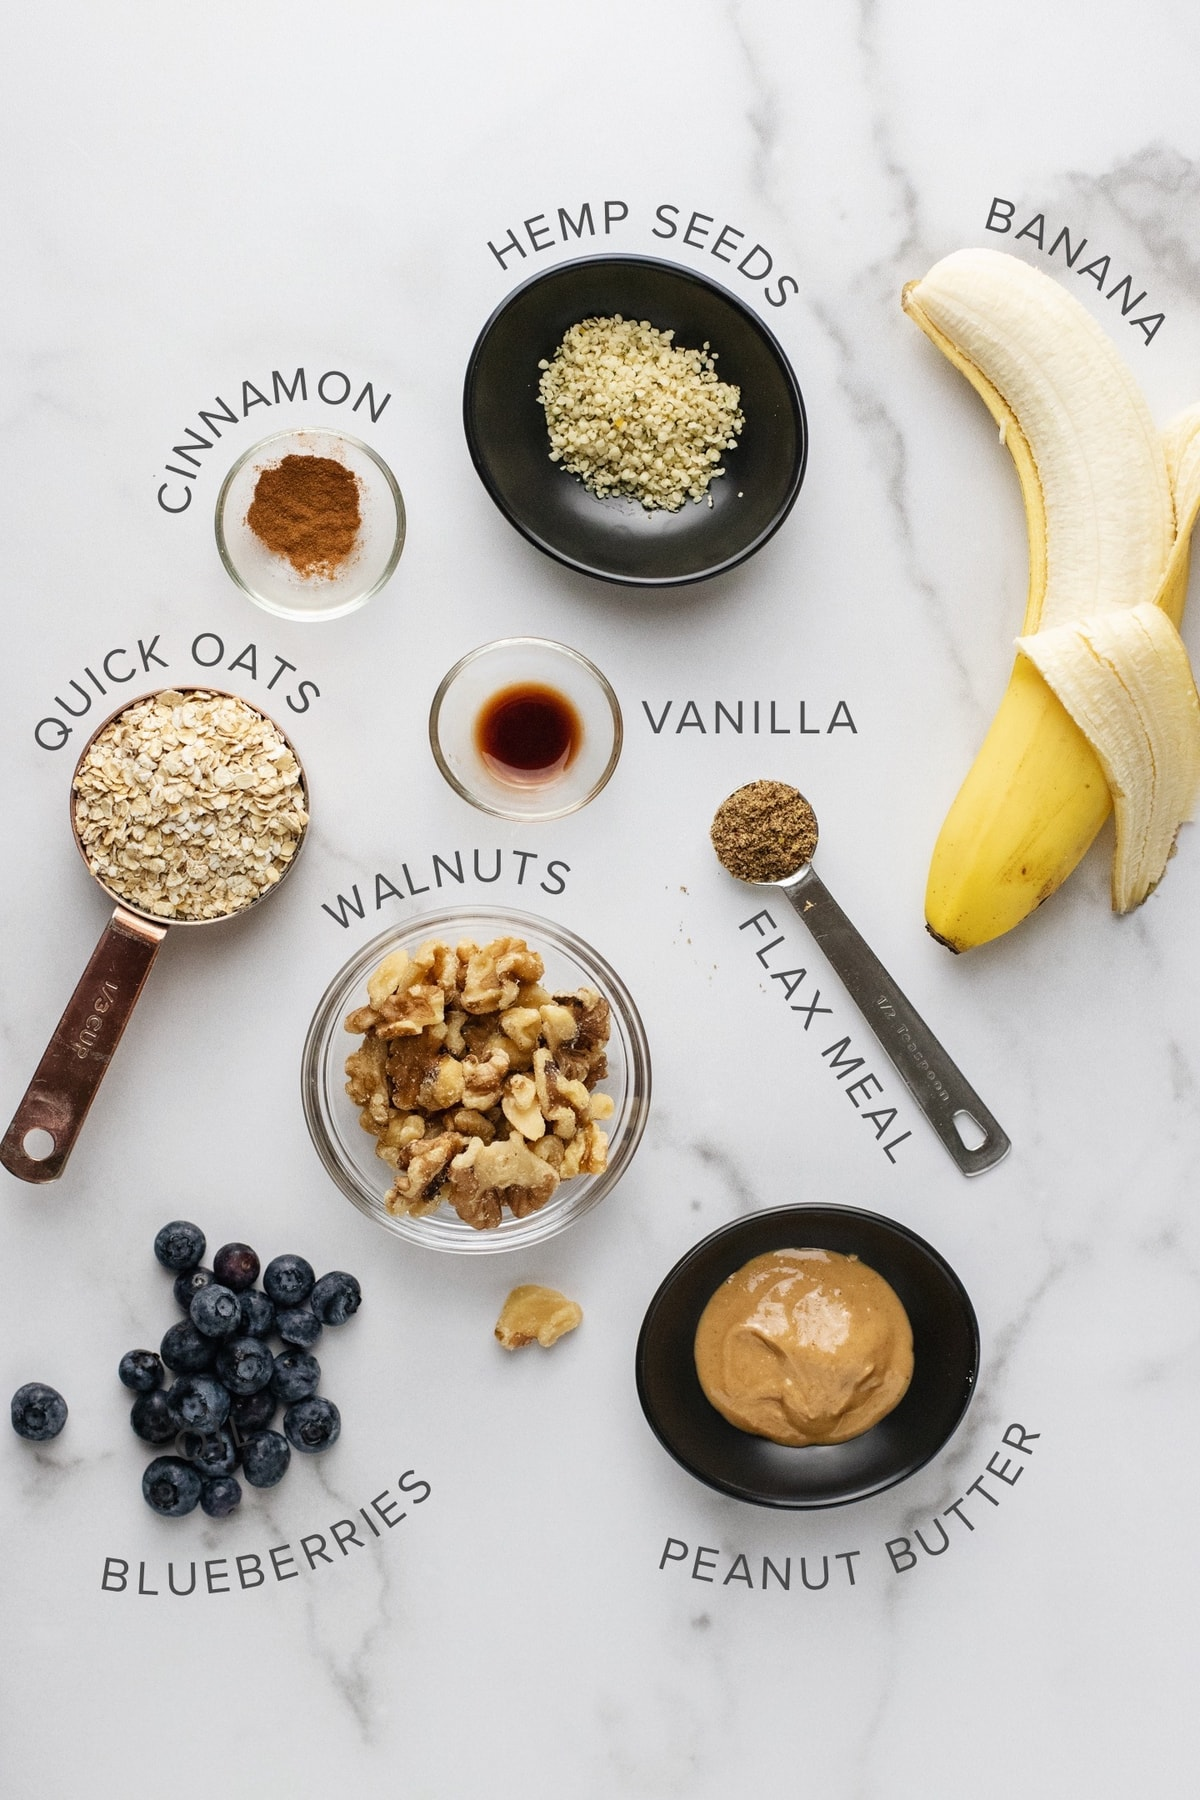 ingredients for an oatmeal bowl arranged on a white counter top.